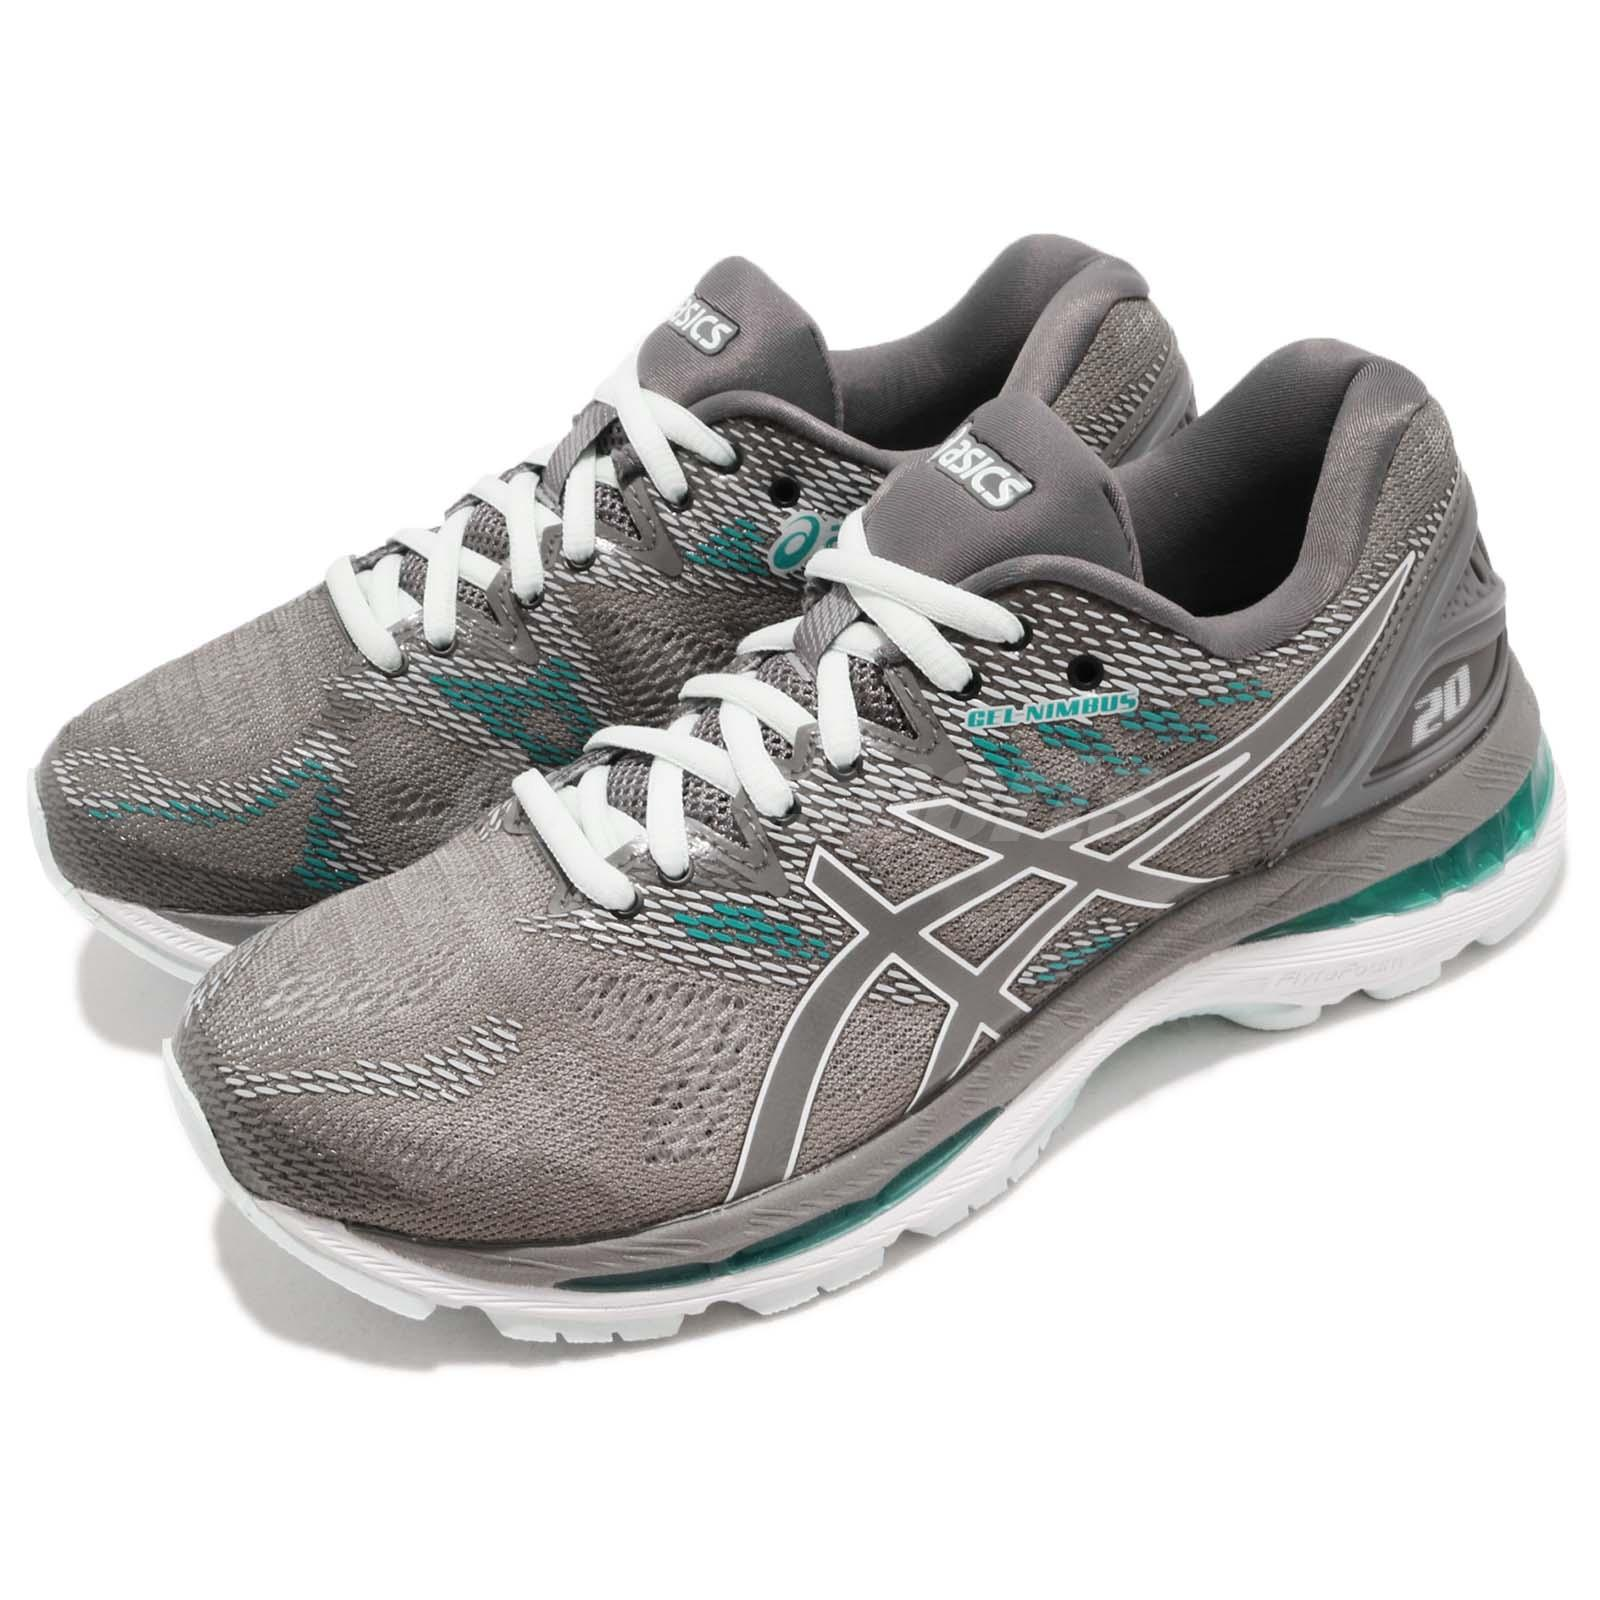 premium selection d2e10 6af66 Details about Asics Gel-Nimbus 20 Carbon Grey Green Women Running Shoes  Sneakers T850N-020